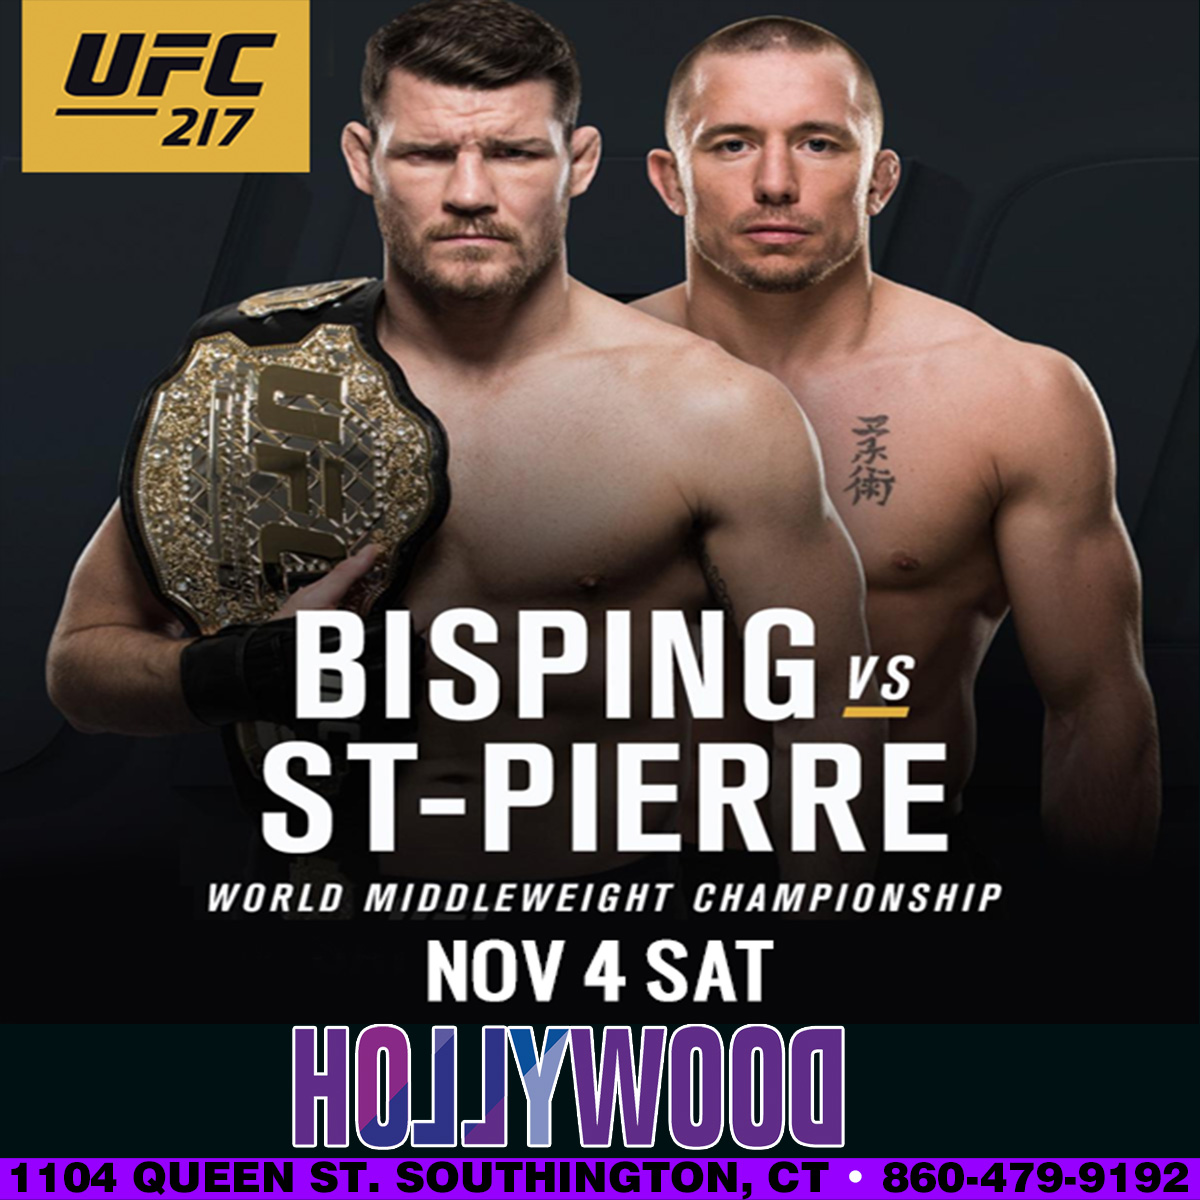 Ufc 217 | Hollywood Strip Club Connecticut